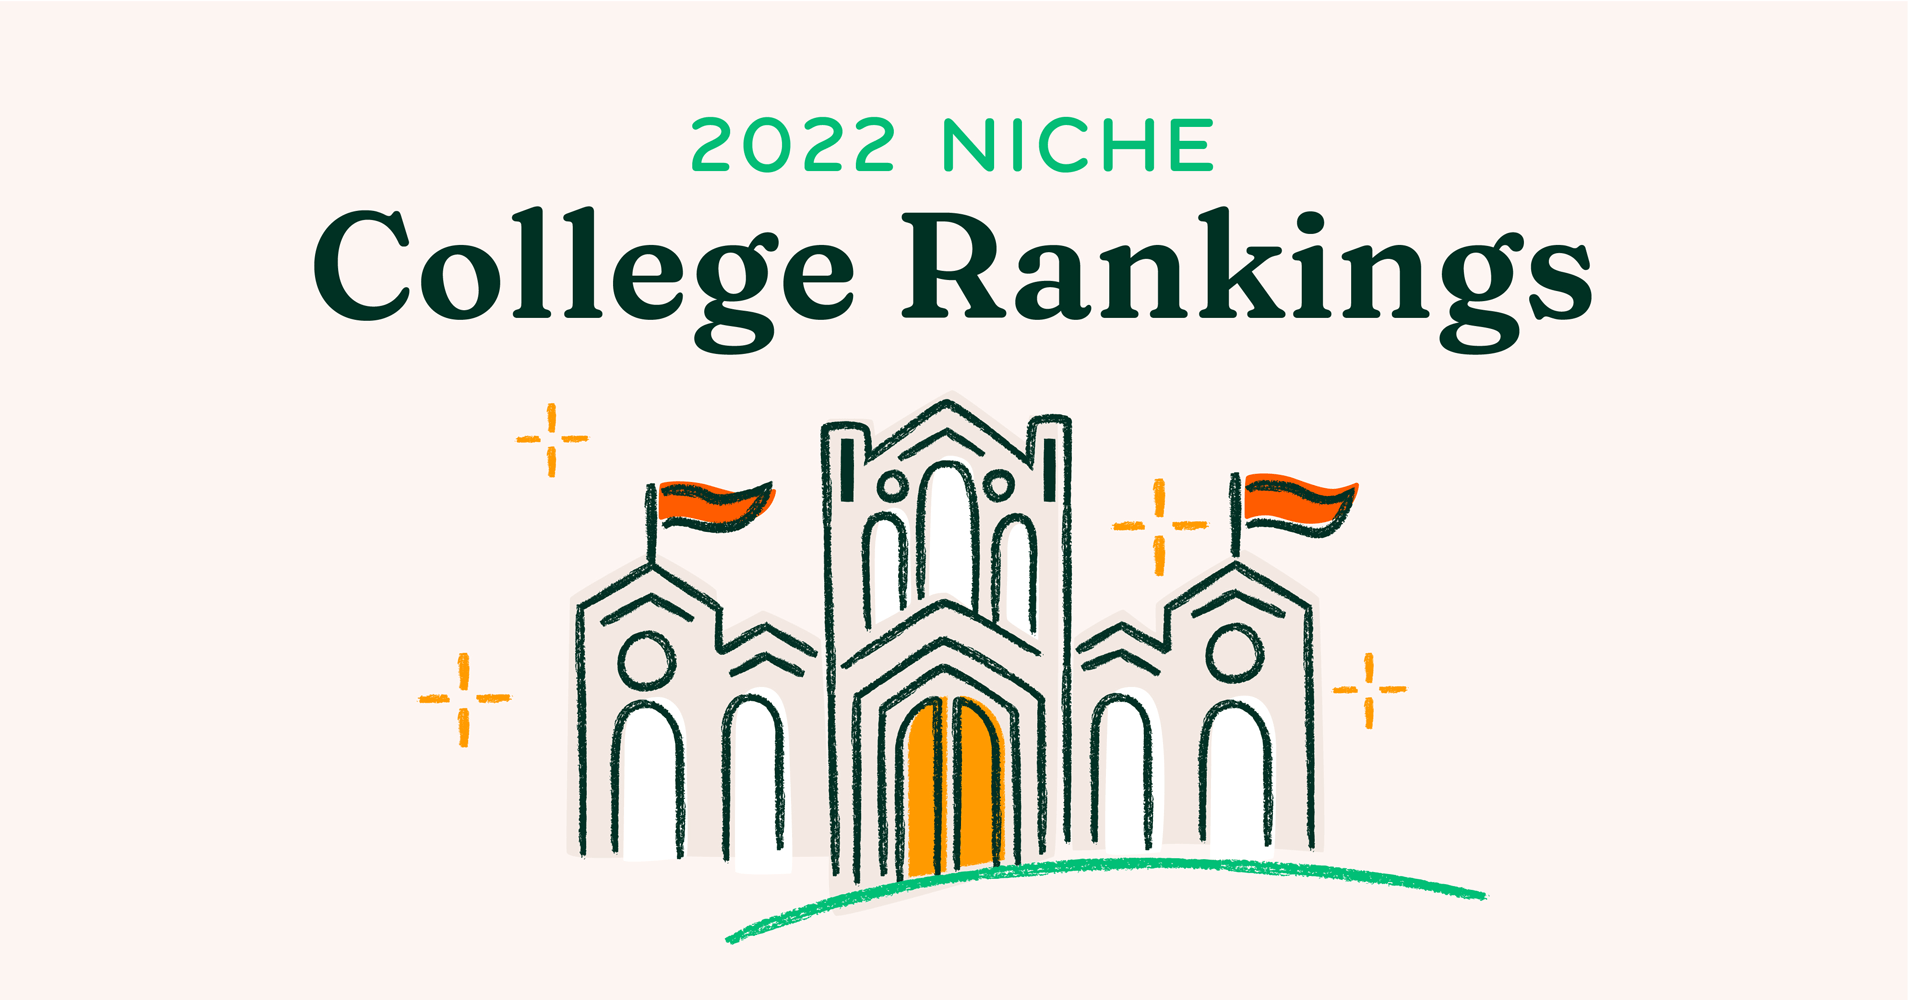 2019 College Rankings - Niche